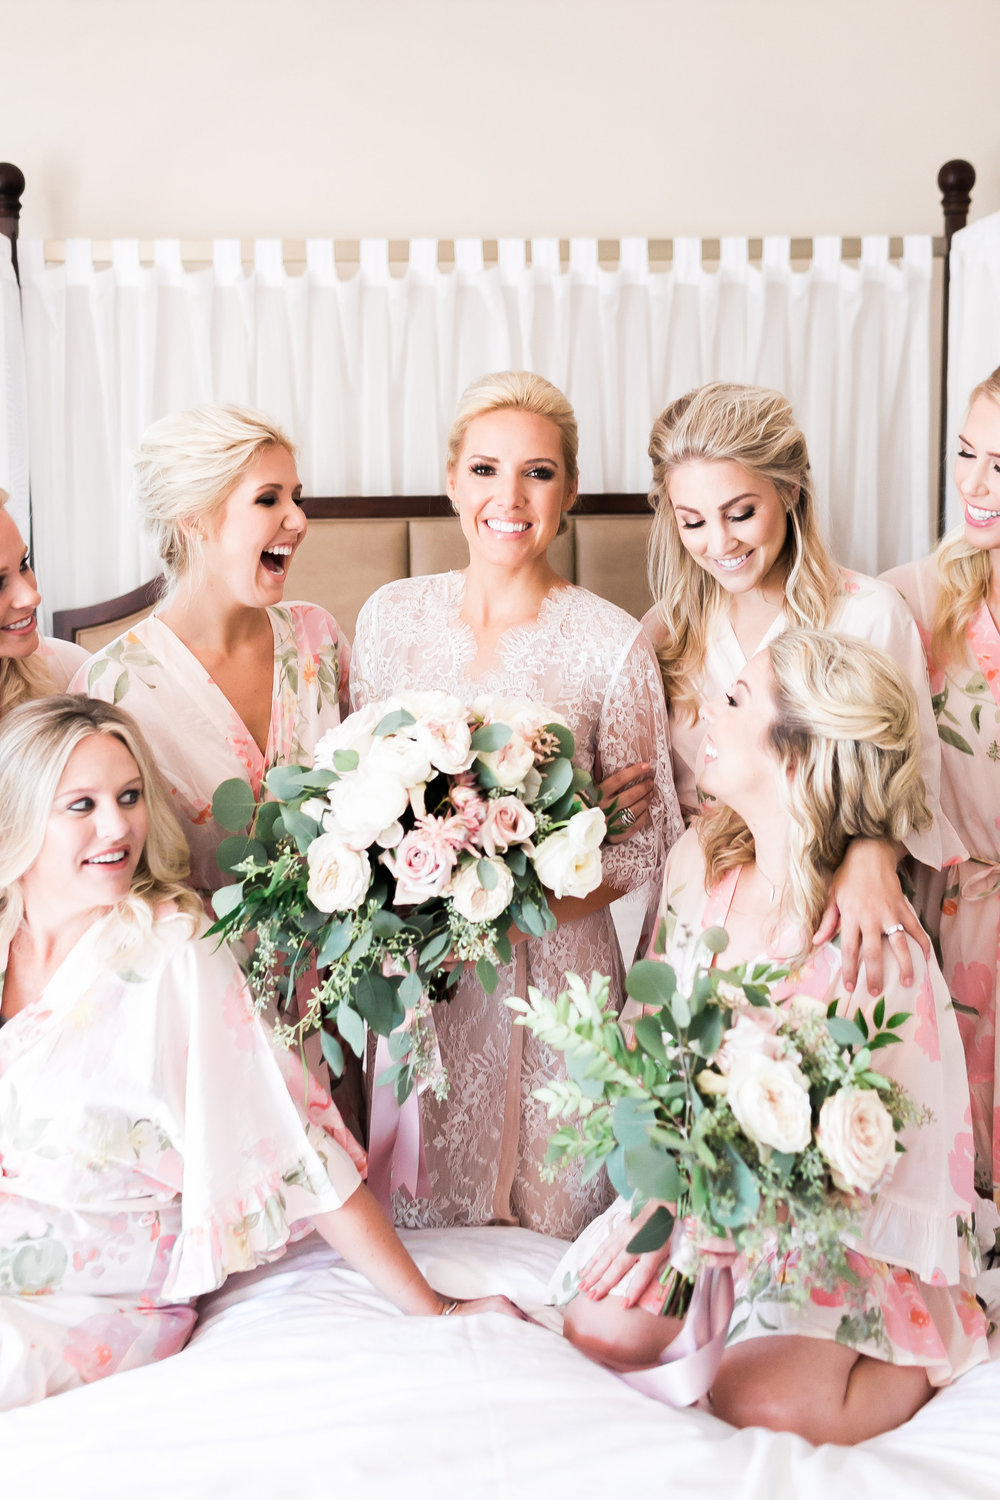 Bridesmaids in robes with with Bouquets.    CREDITS:  Destination Wedding Planner  ANDREA EPPOLITO EVENTS   ·  Images by  J.ANNE P  HOTOGRAPHY   ·  Video  HOO FILMS   ·  Venue Ritz Carlton Bacara Santa Barbara  · Gown  MONIQUE LHULLIER  · Bridesmaids Dresses  SHOW ME YOUR MUMU  · Stationery  SHE PAPERIE  · Bride's Shoes  BADGLEY MISCHKA  · Hair and Makeup  TEAM HAIR AND MAKEUP  · Floral  BLUE MAGNOLIA  · Linen  LA TAVOLA  · Decor Rentals  TENT MERCHANT  · Calligraphy  EBB  ·Lighting  FIVE STAR AV  · Ice Cream Station  MCCONNELL'S ICE CREAM